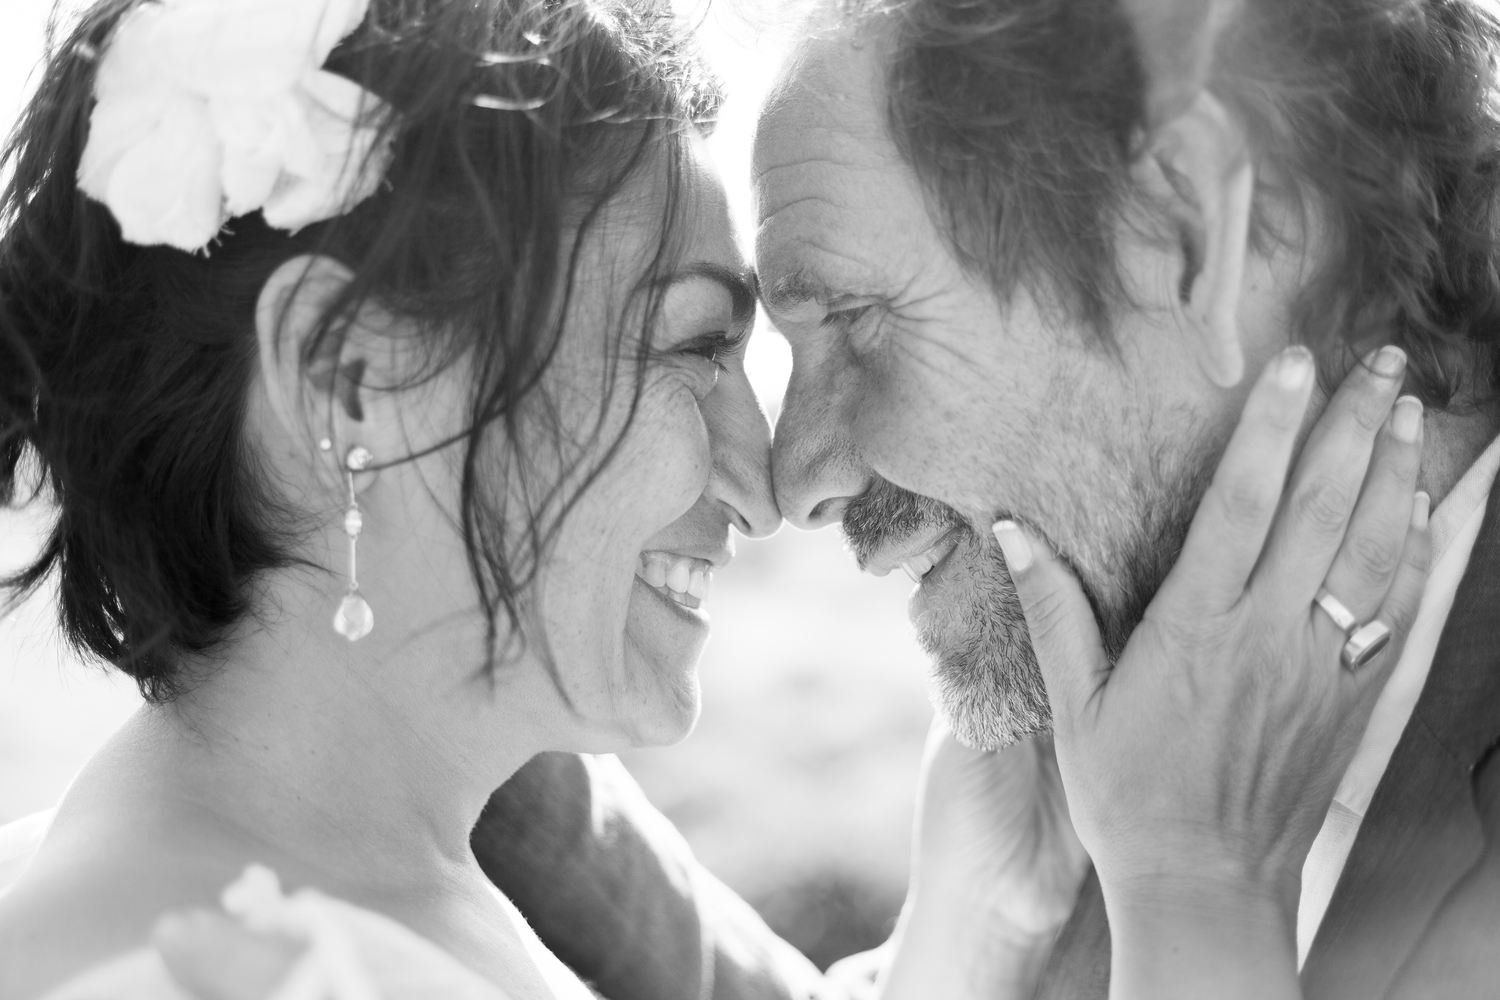 Dear Phil, your photographs are amazing, but what makes you UNIQUE is that you not only captured a moment with your lens, but our soul and feelings which filled each of your photographs with emotions. We cannot thank you enough for this timeless gift!   Once again, THANK YOU!  Monica & Markus